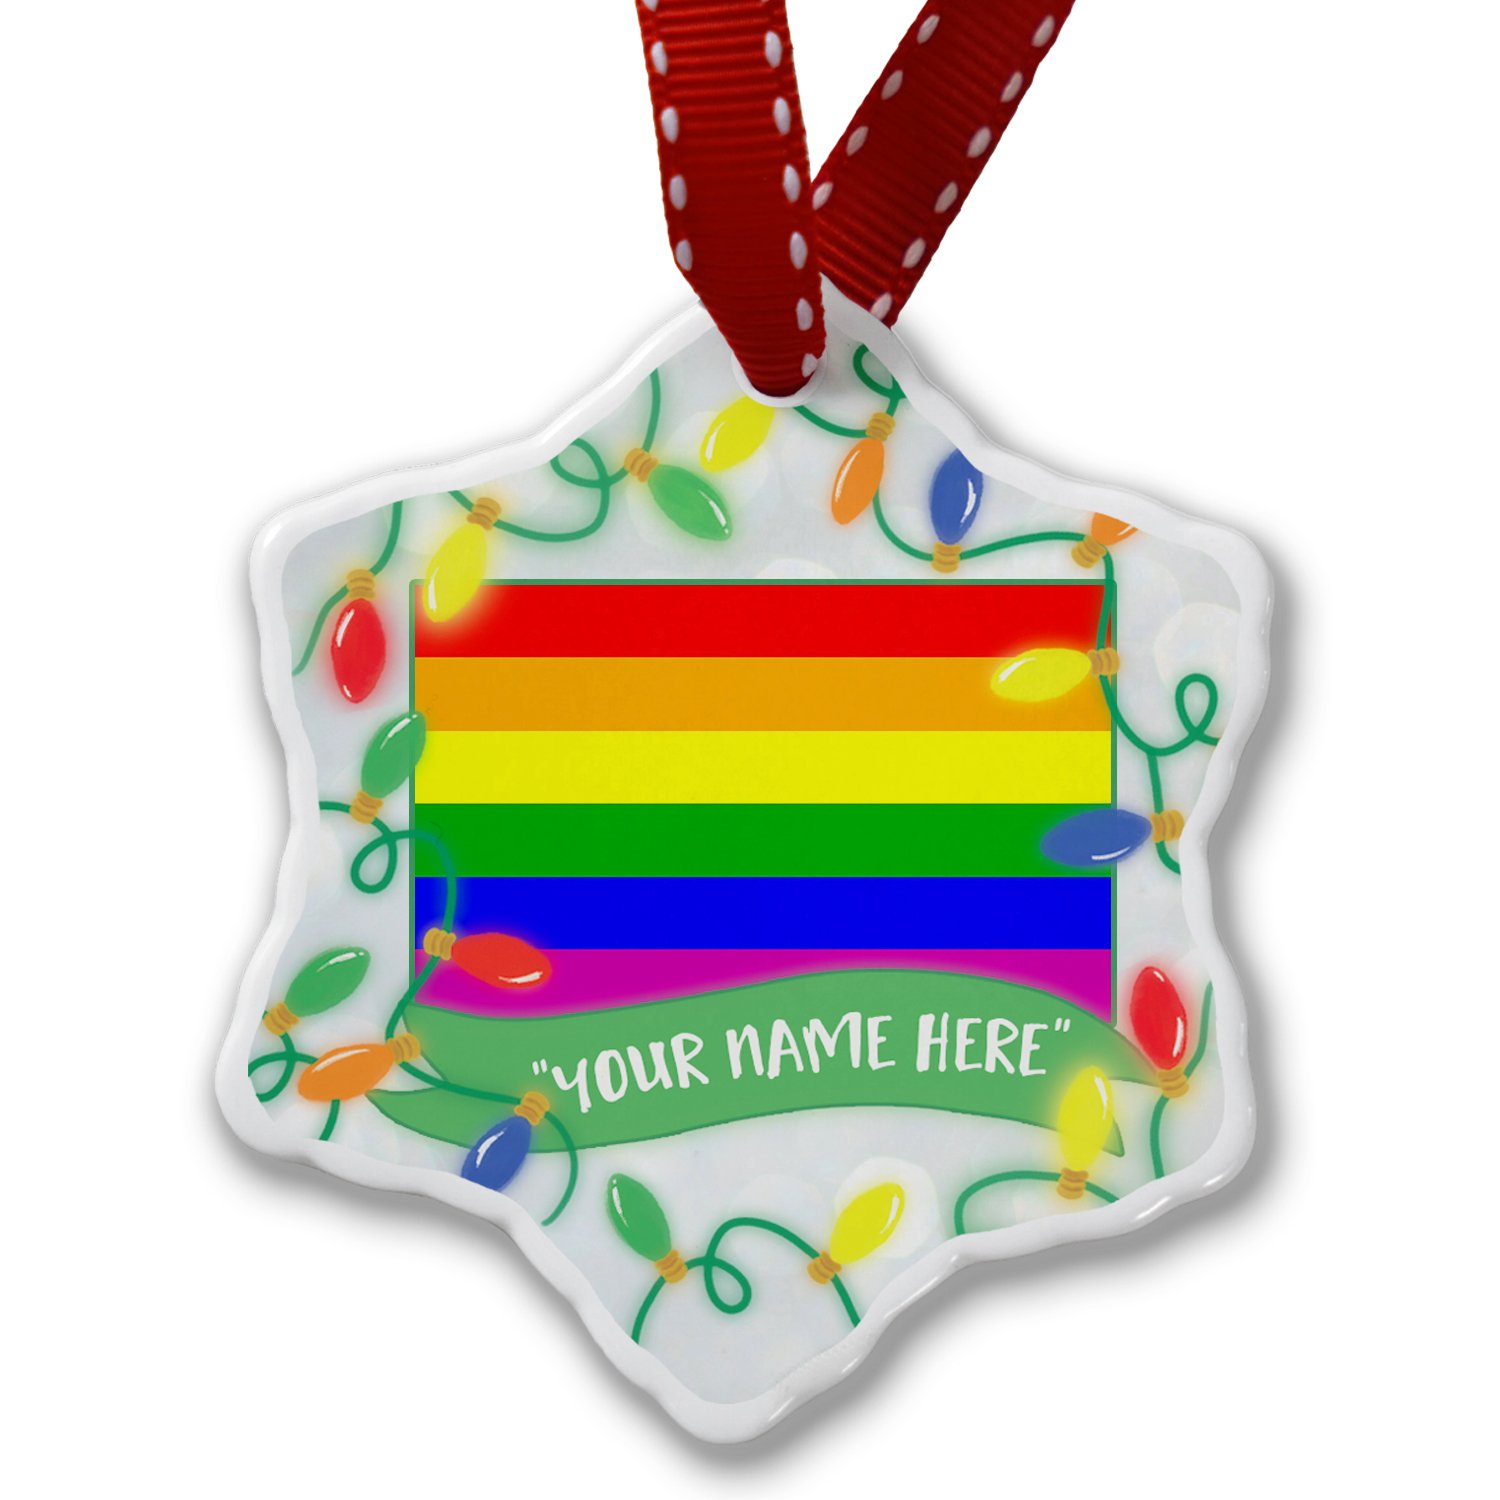 Personalized Name Christmas Ornament, Rainbow Flag NEONBLOND ornament-05-102444